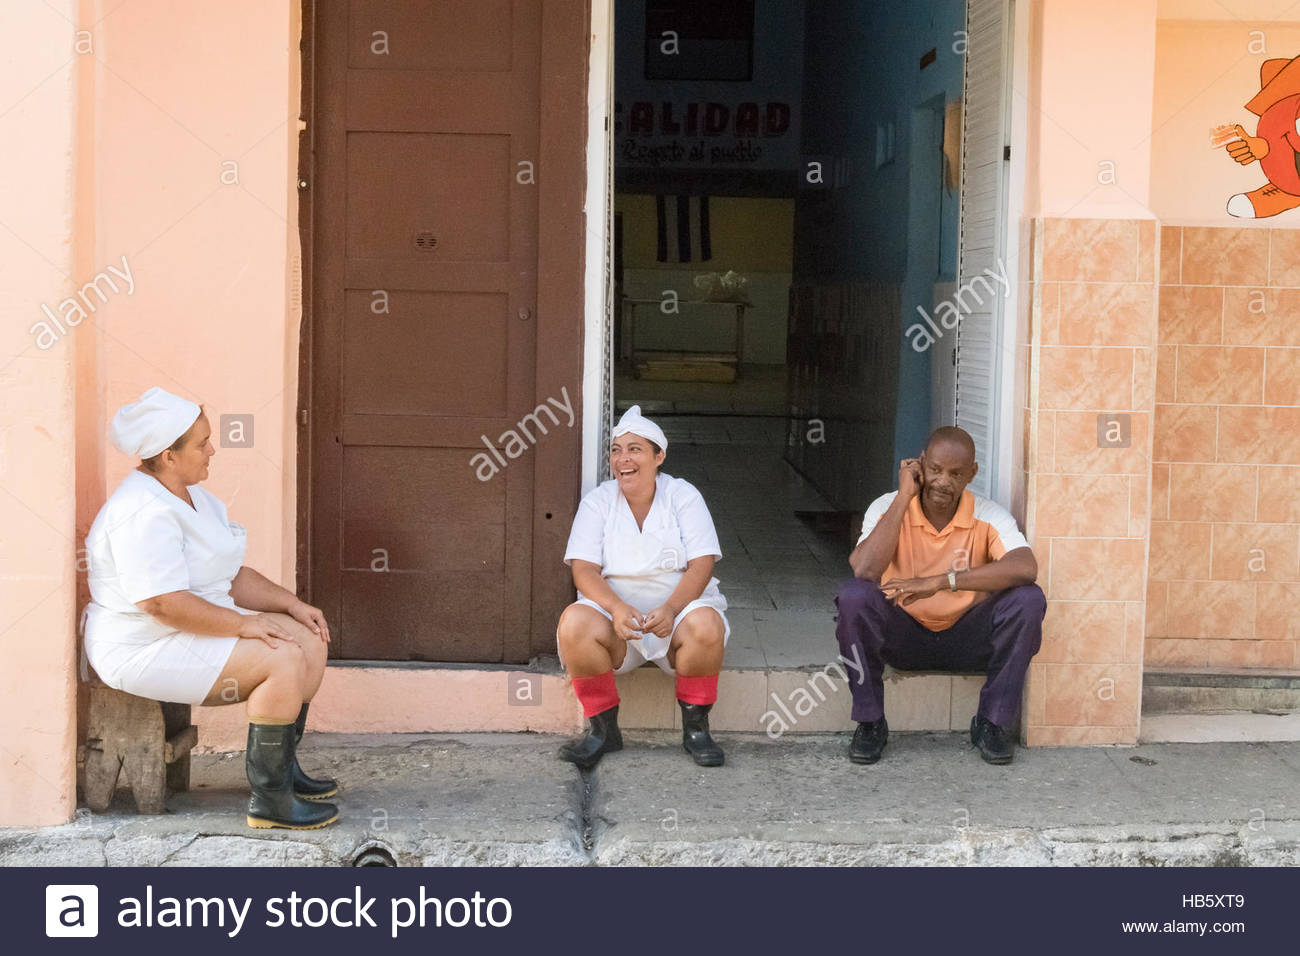 Cuban staff workers sitting and chatting merrily outside a building during their free time. - Stock Image